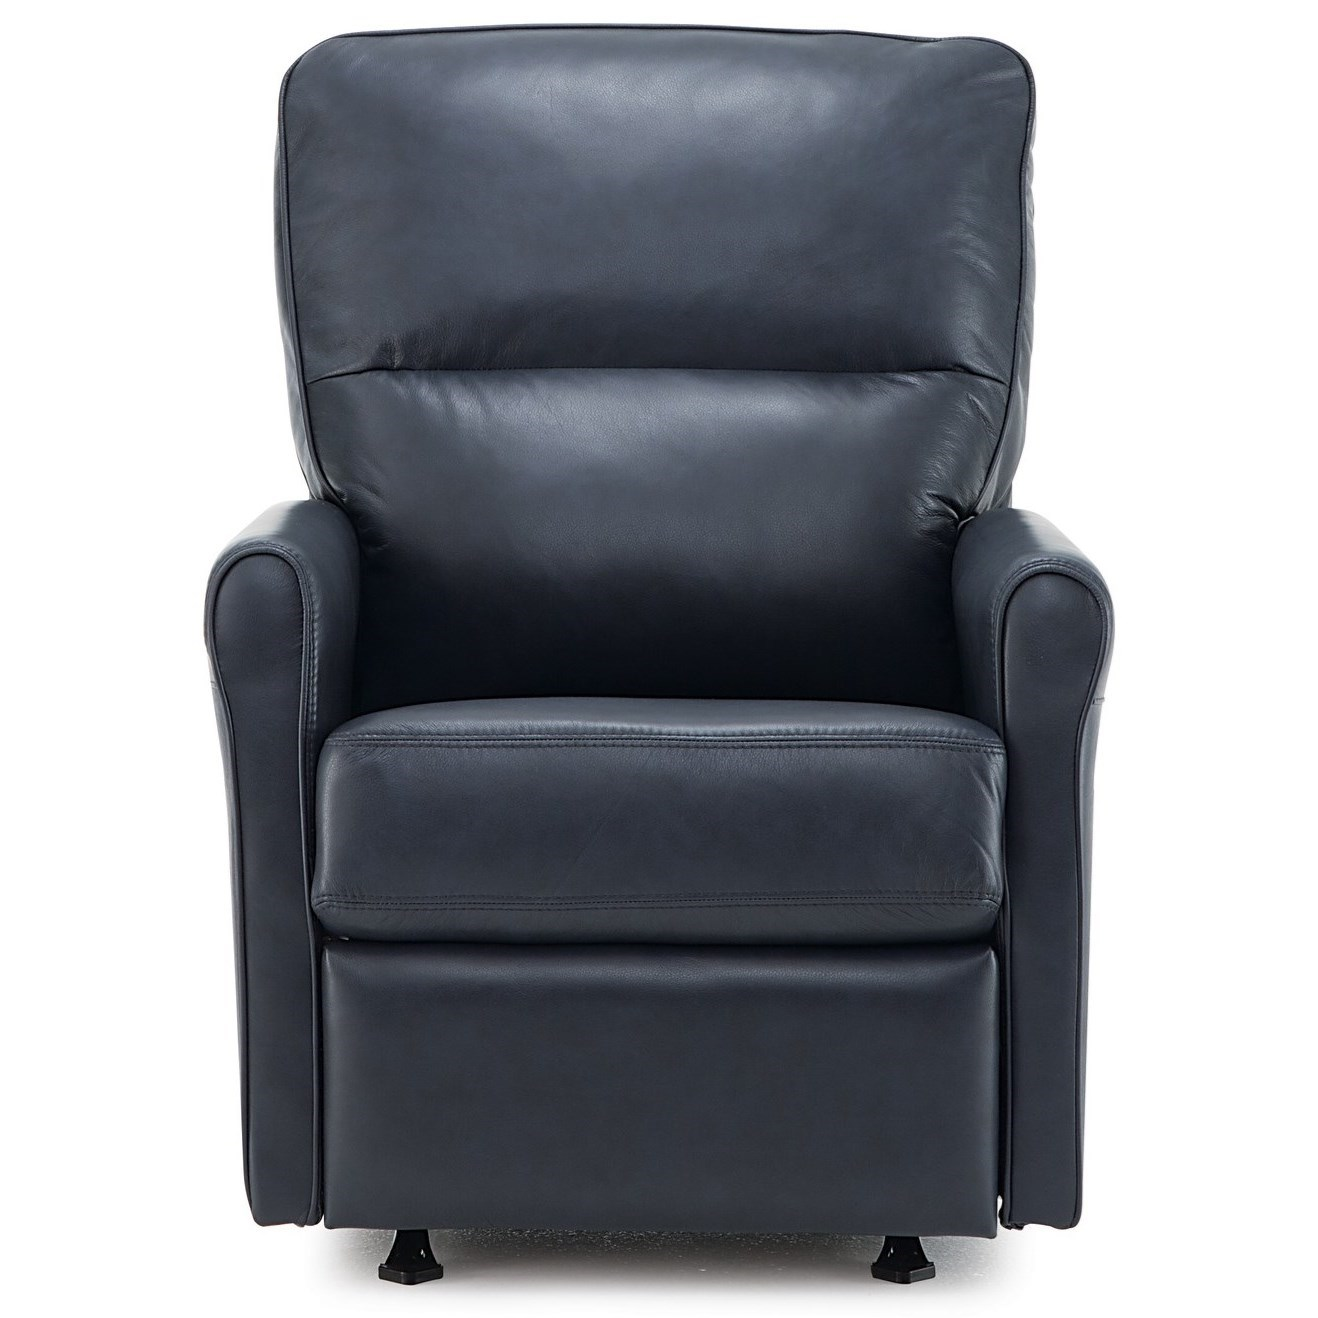 Pinecrest Rocker Manual Recliner by Palliser at Upper Room Home Furnishings